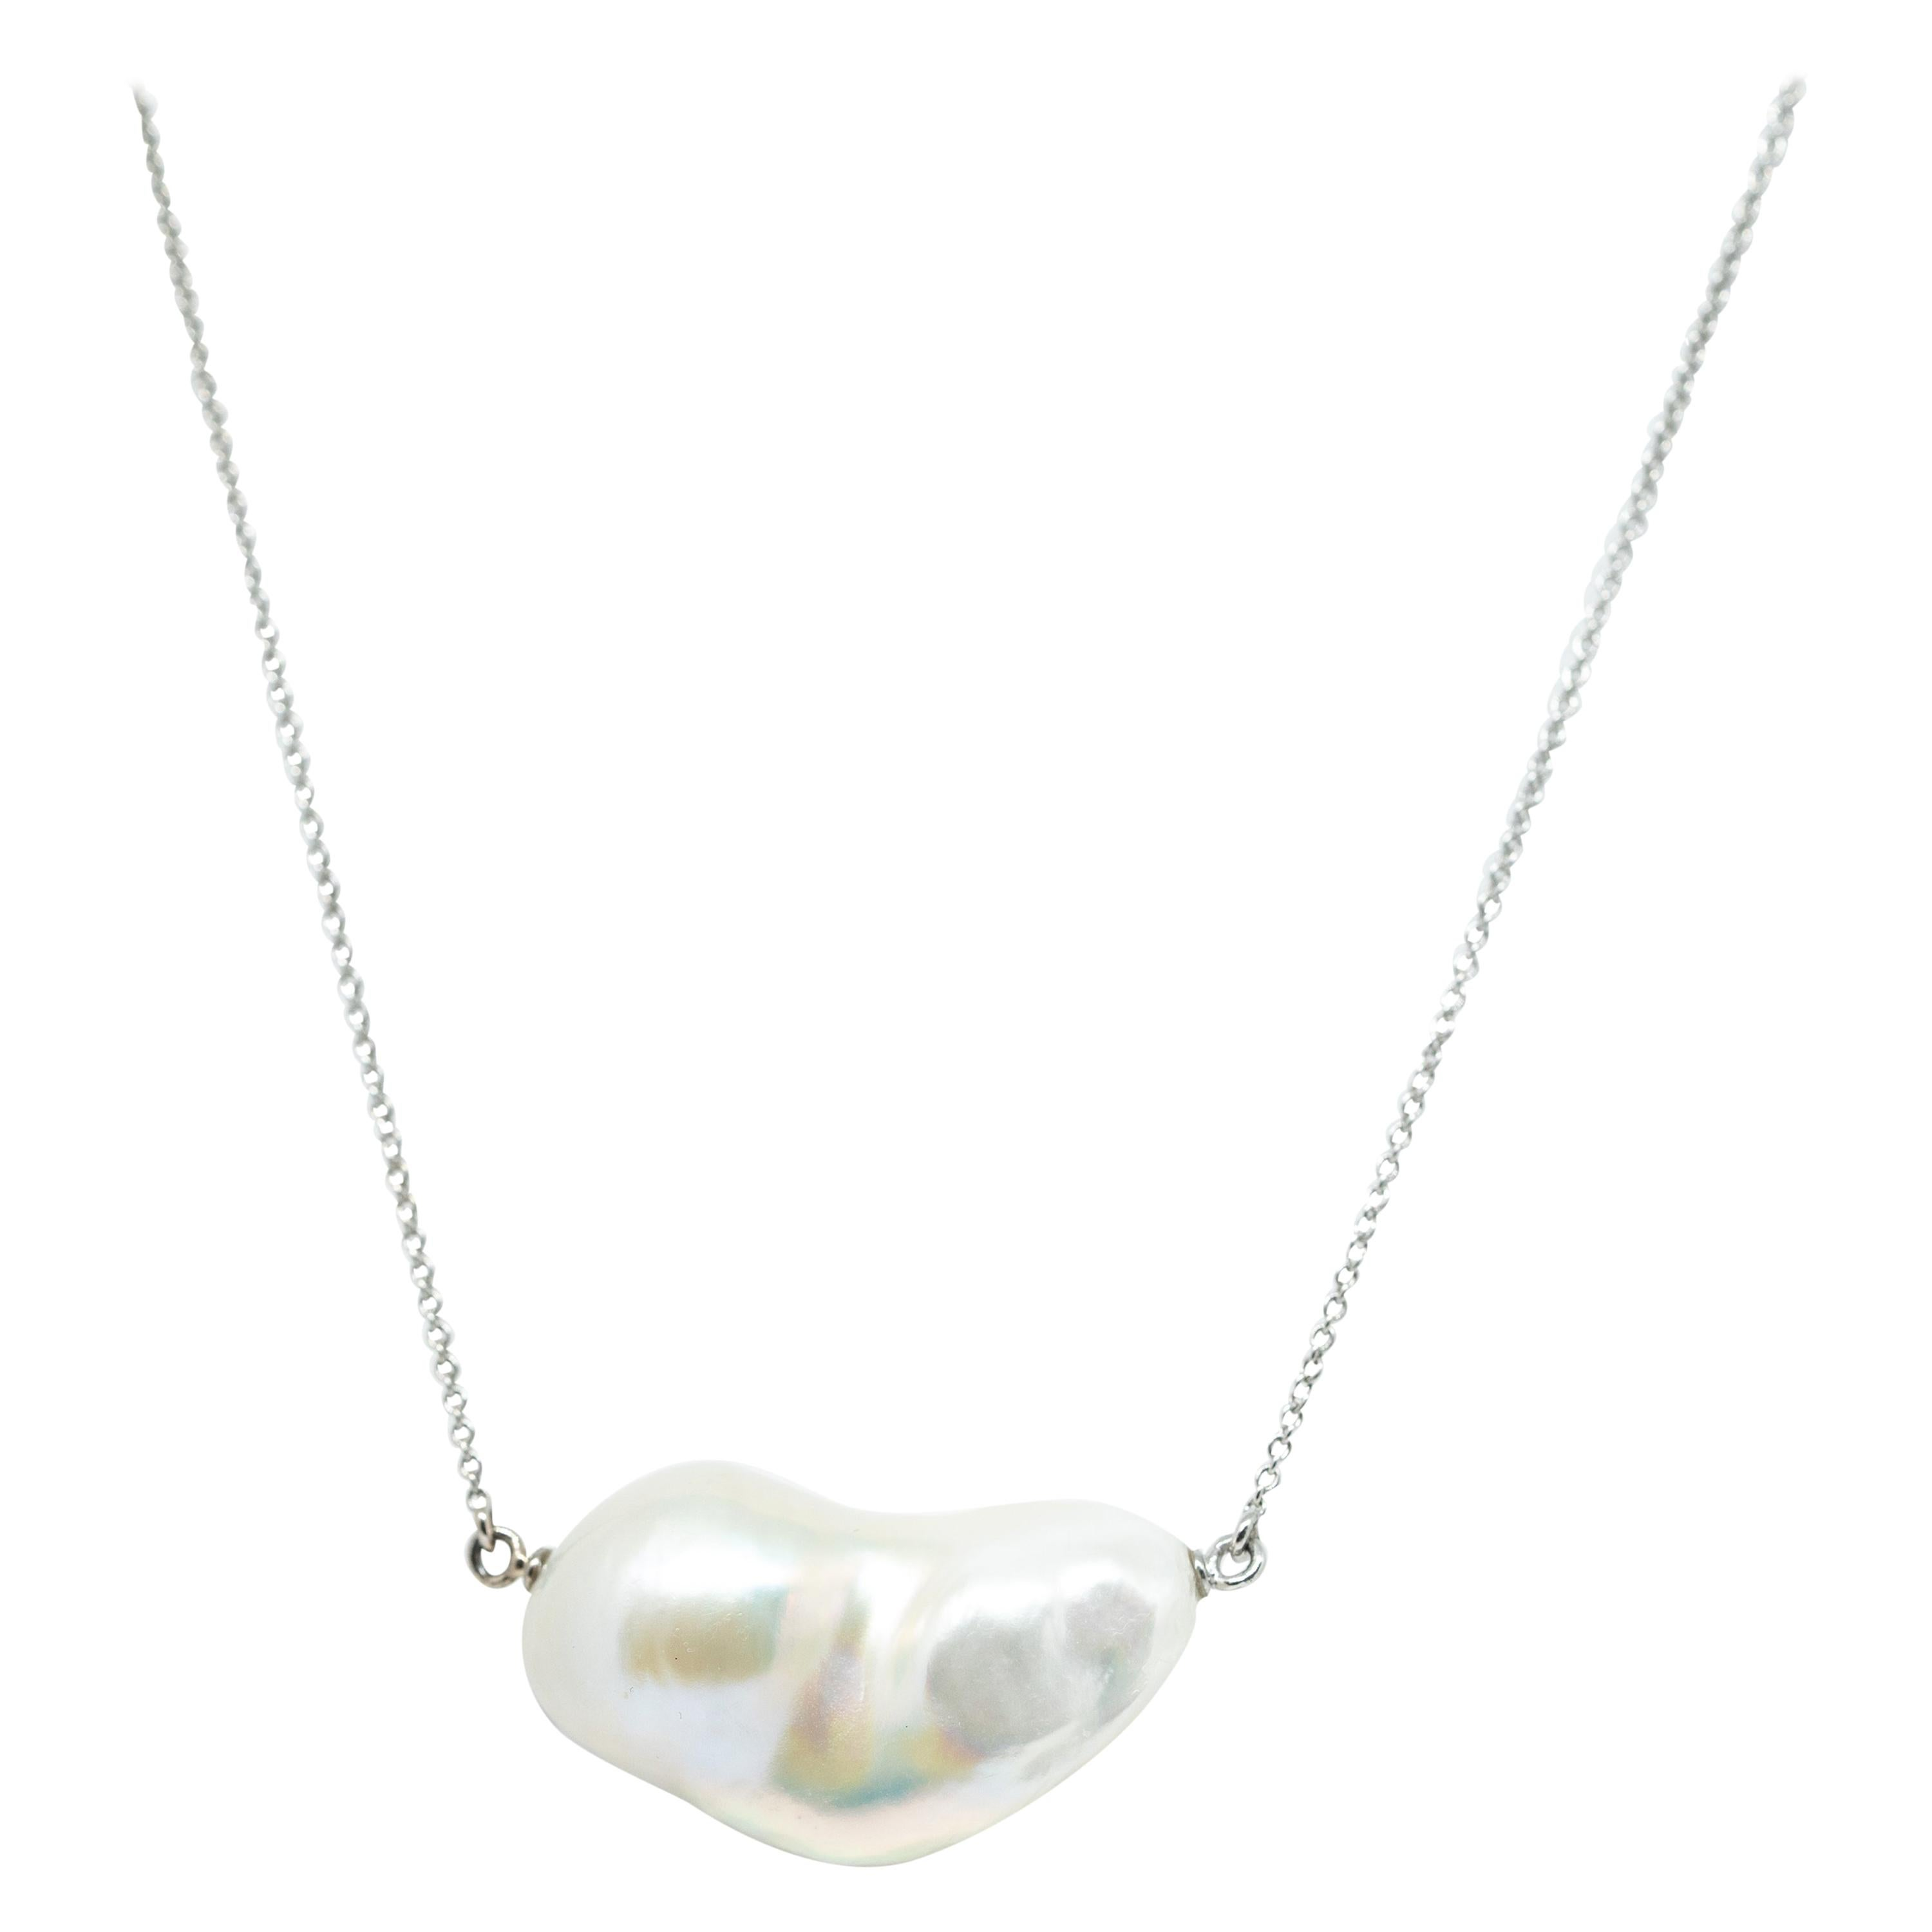 Unique Freshwater Baroque Pearl Set on 18 Karat Gold Chain by Marion Jeantet